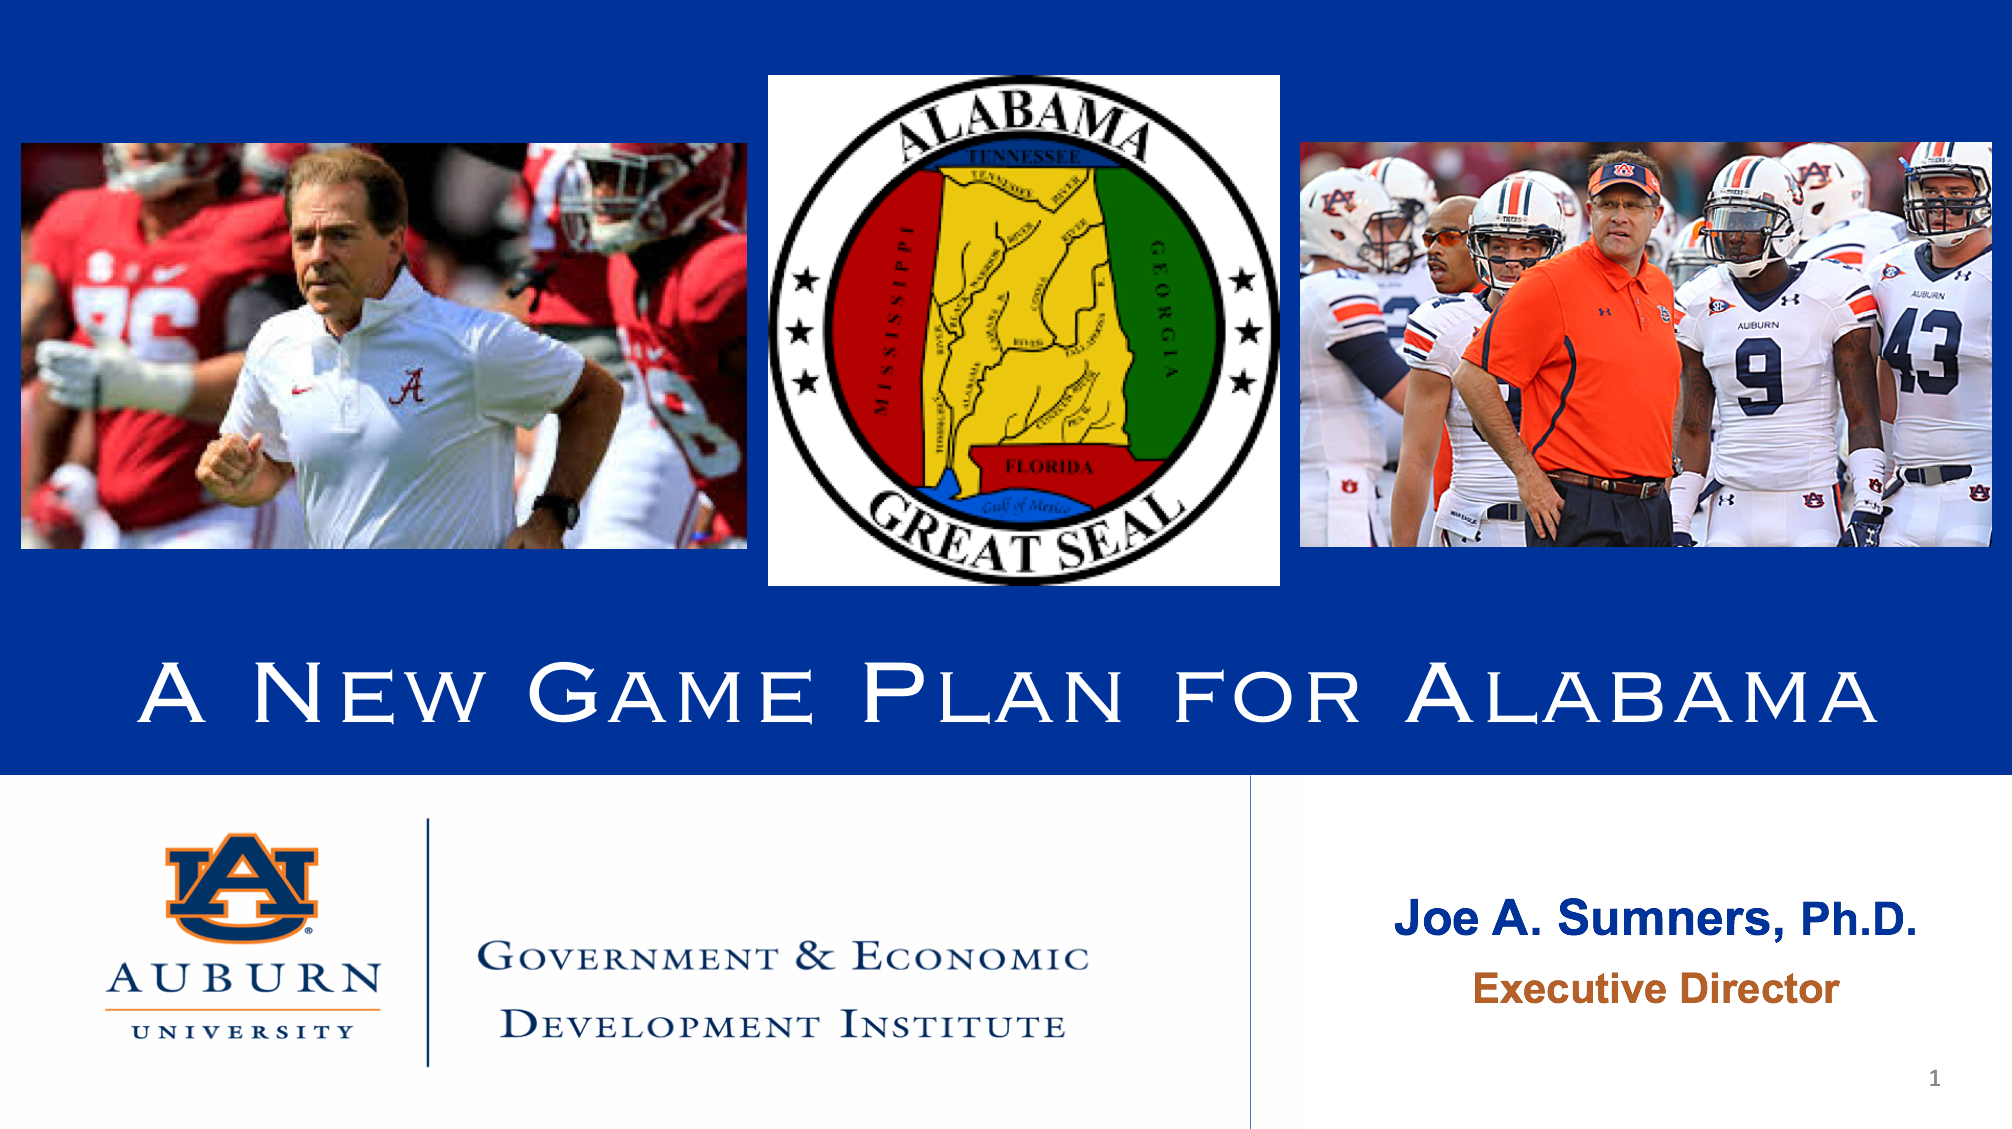 A New Game Plan for Alabama Presentation